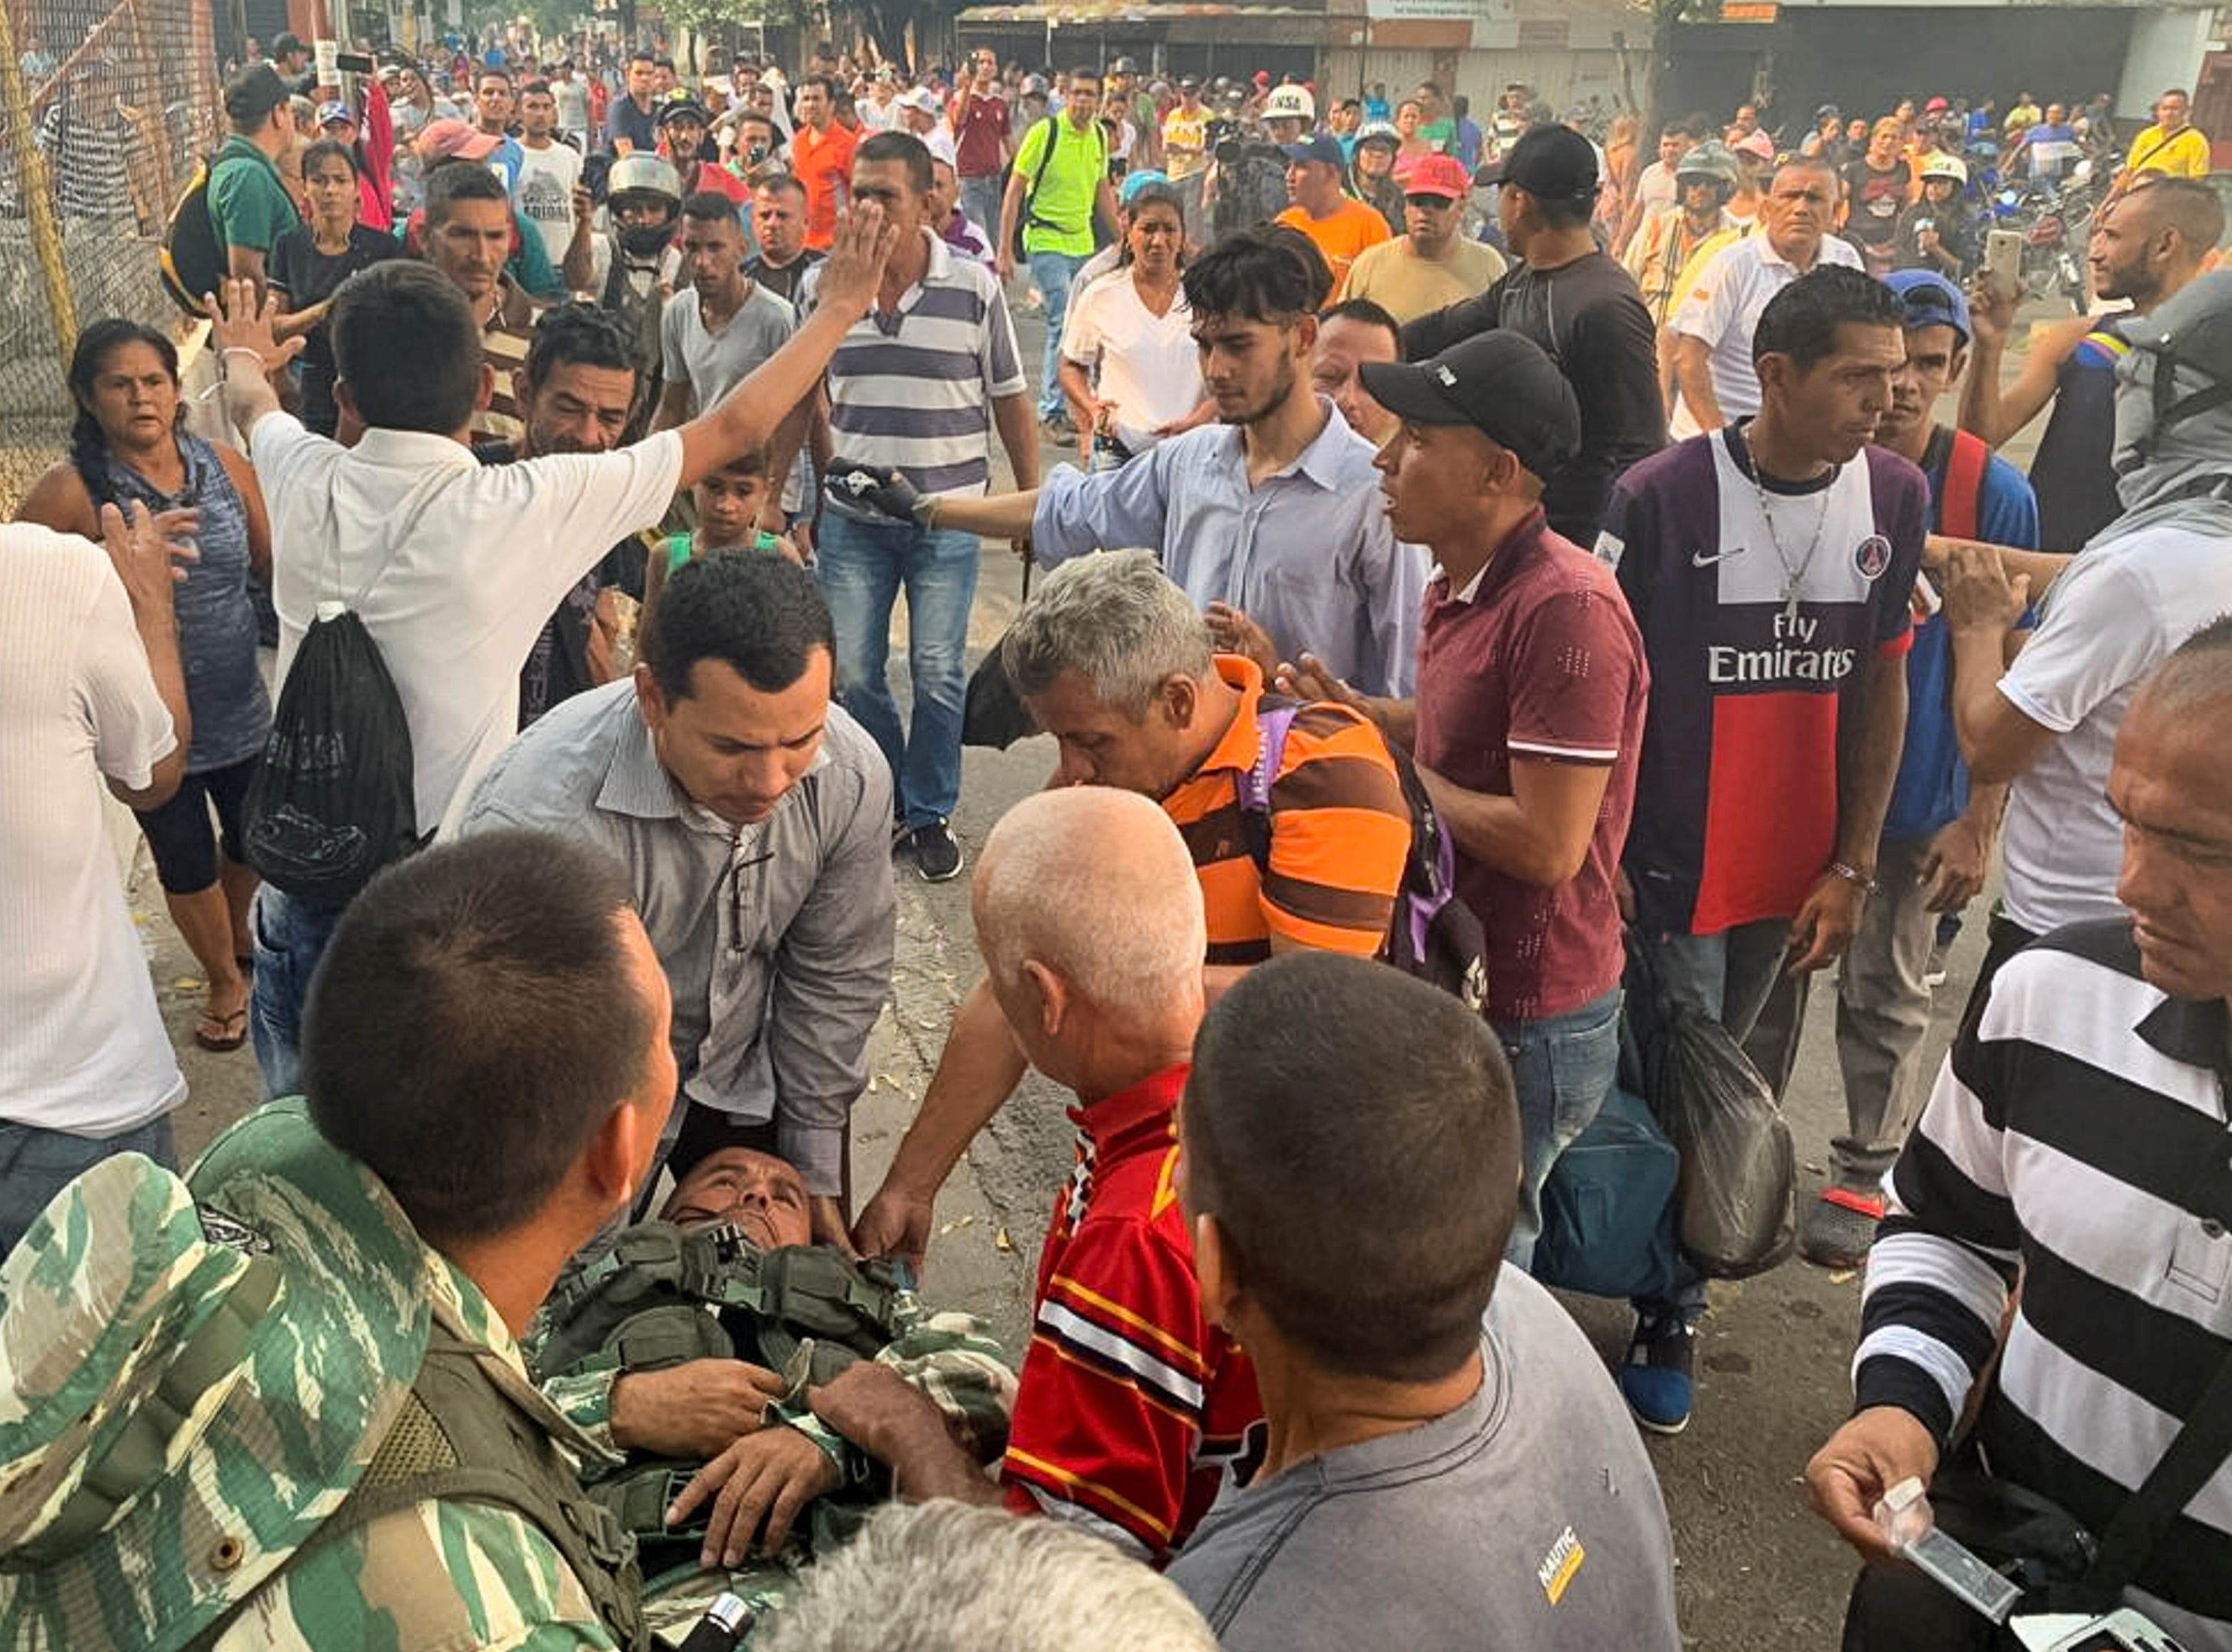 A sergeant (C) of the Venezuela Armed Forces militia is stretchered away after he was injured during clashes between the Bolivarian National Guard and demonstrators in the Venezuelan municipality of Urena, bordering Colombia, in Venezuela.